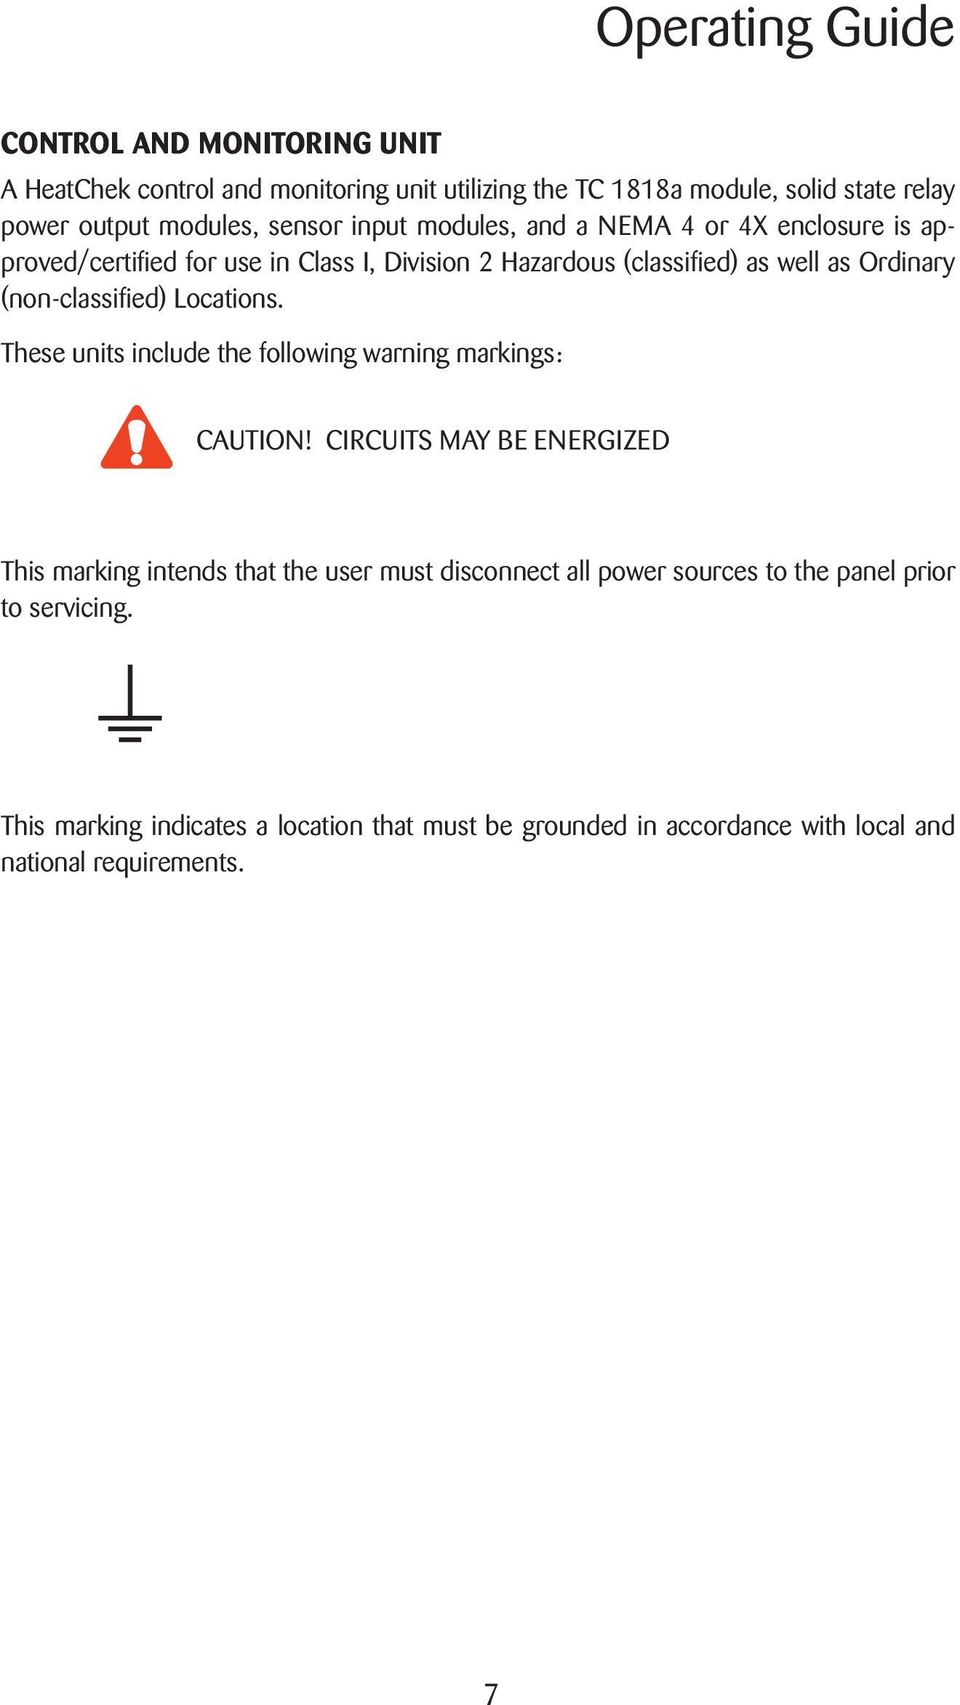 Thermon Tc 1818a Wiring Diagram Library Non Classifi Ed Locations These Units Include The Following Warning Markings